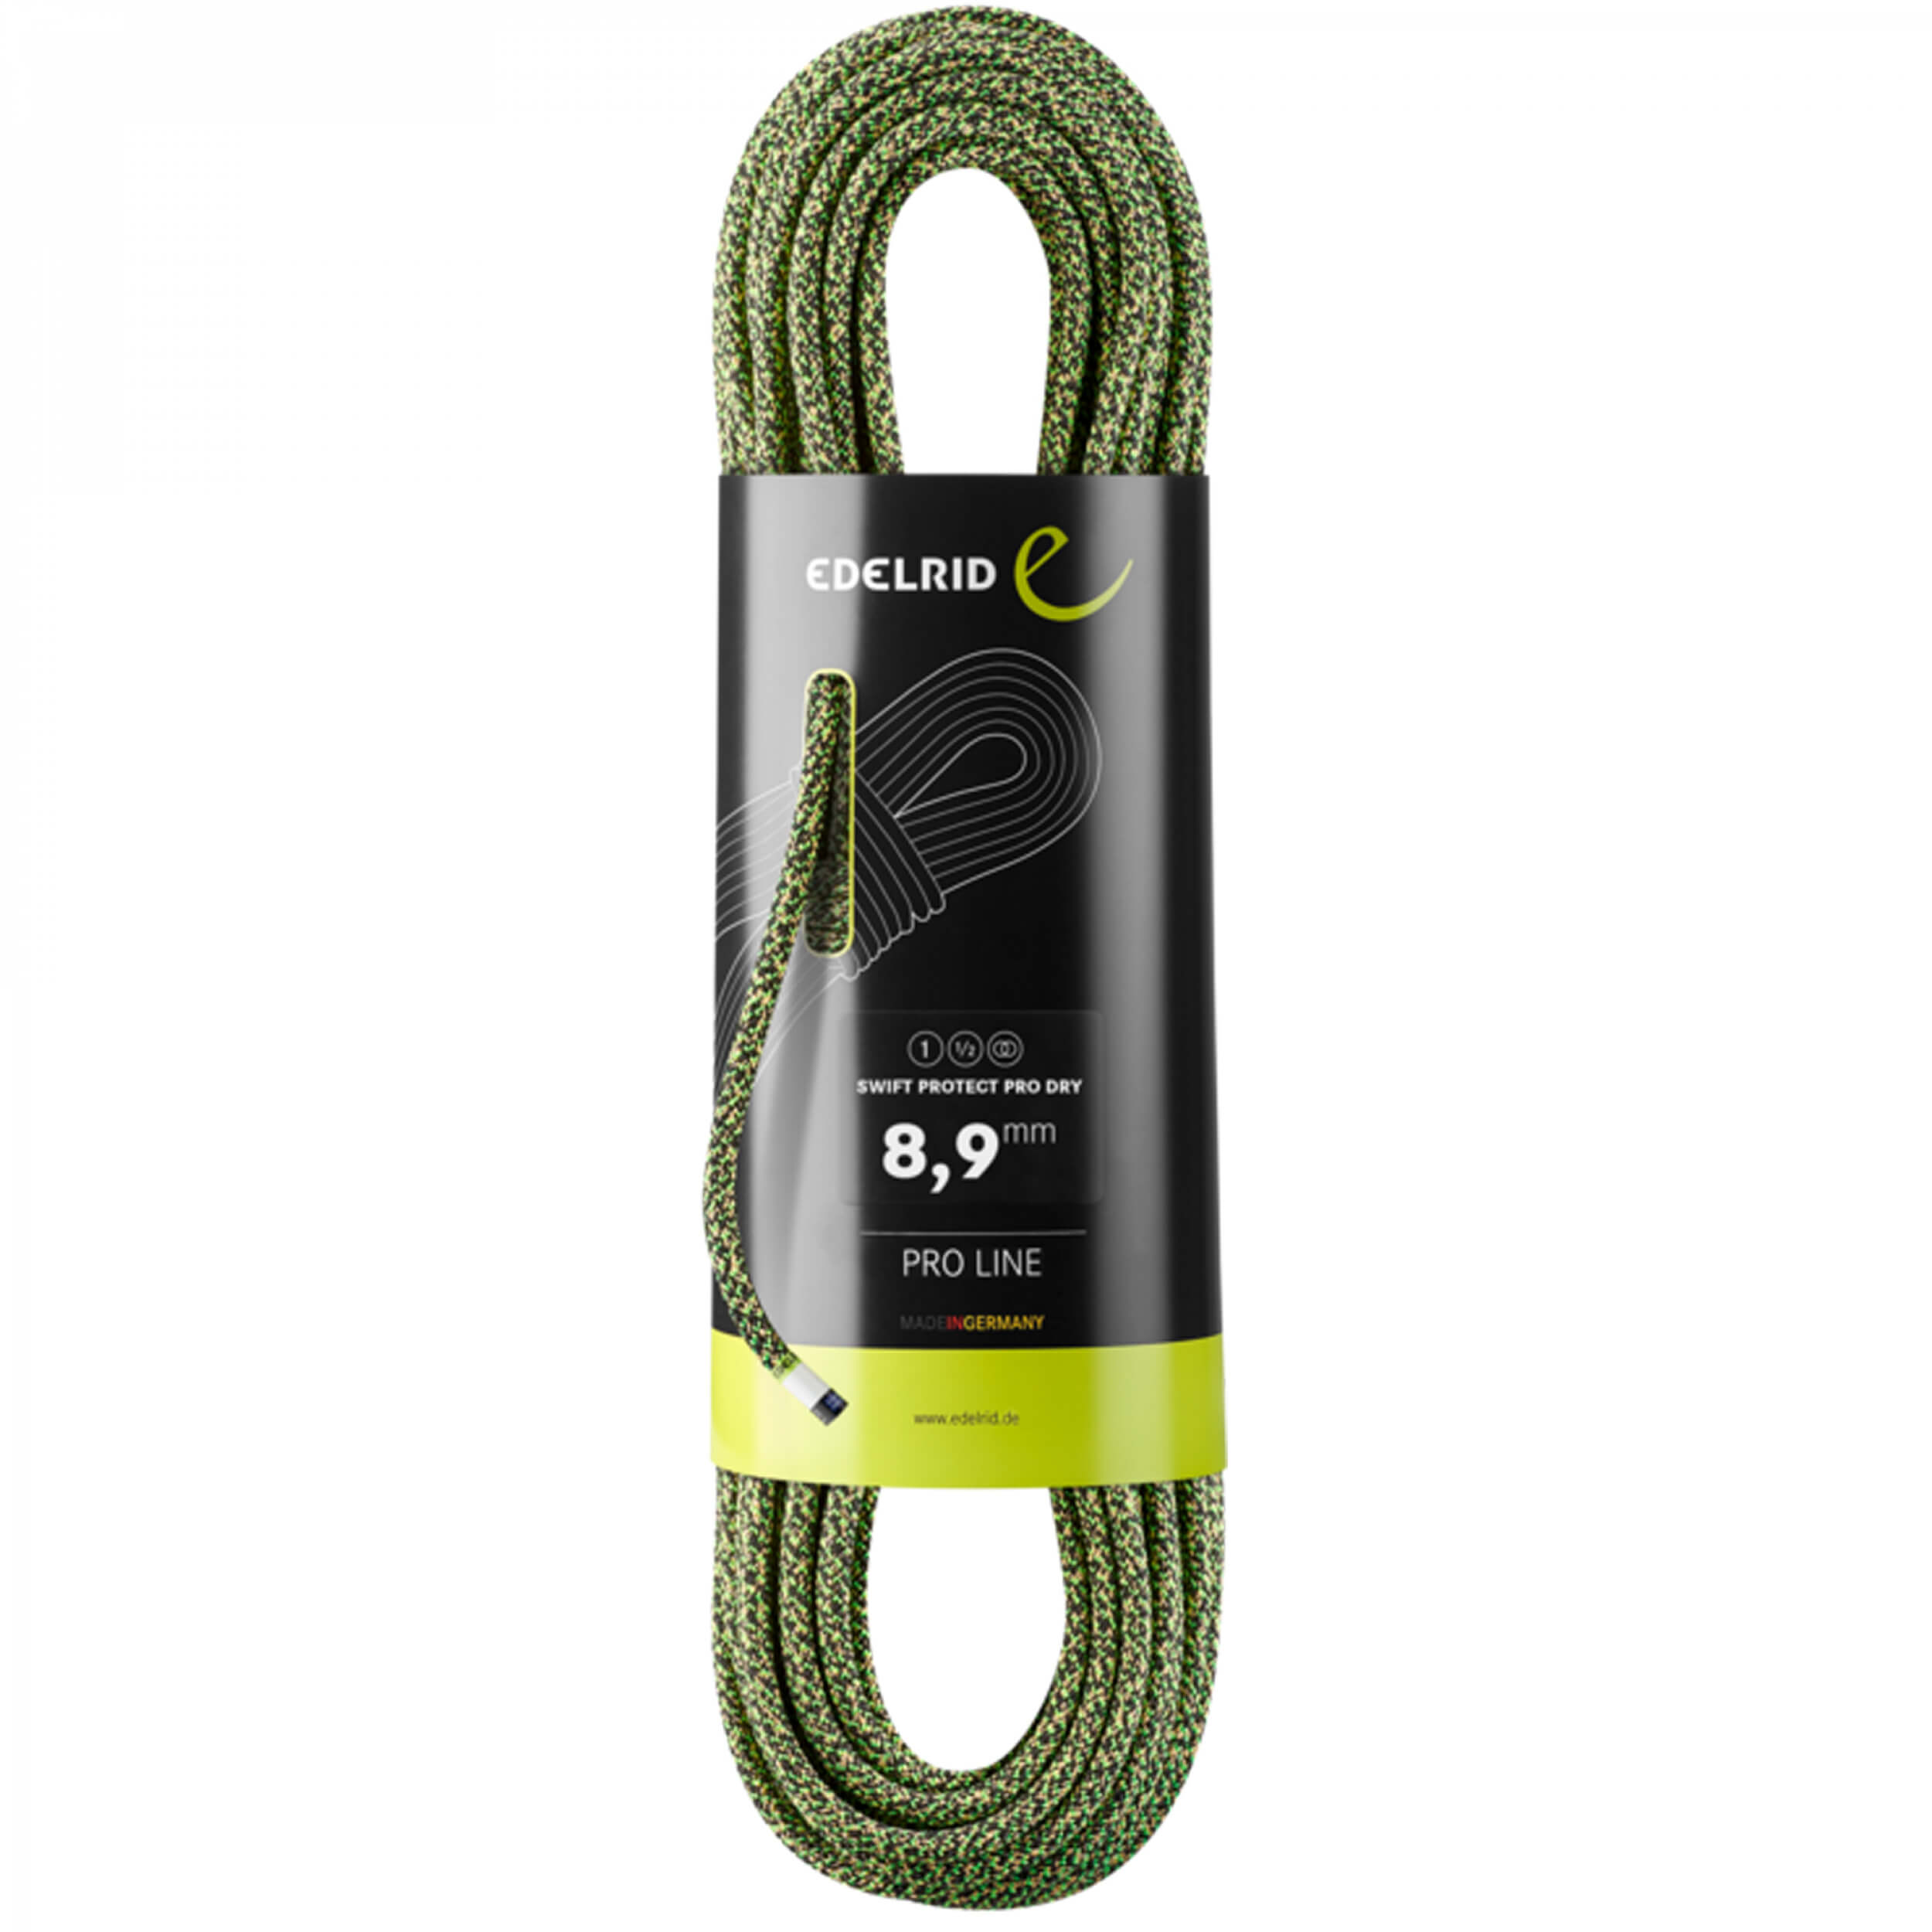 Edelrid Swift Protect Pro Dry 8,9mm night-green